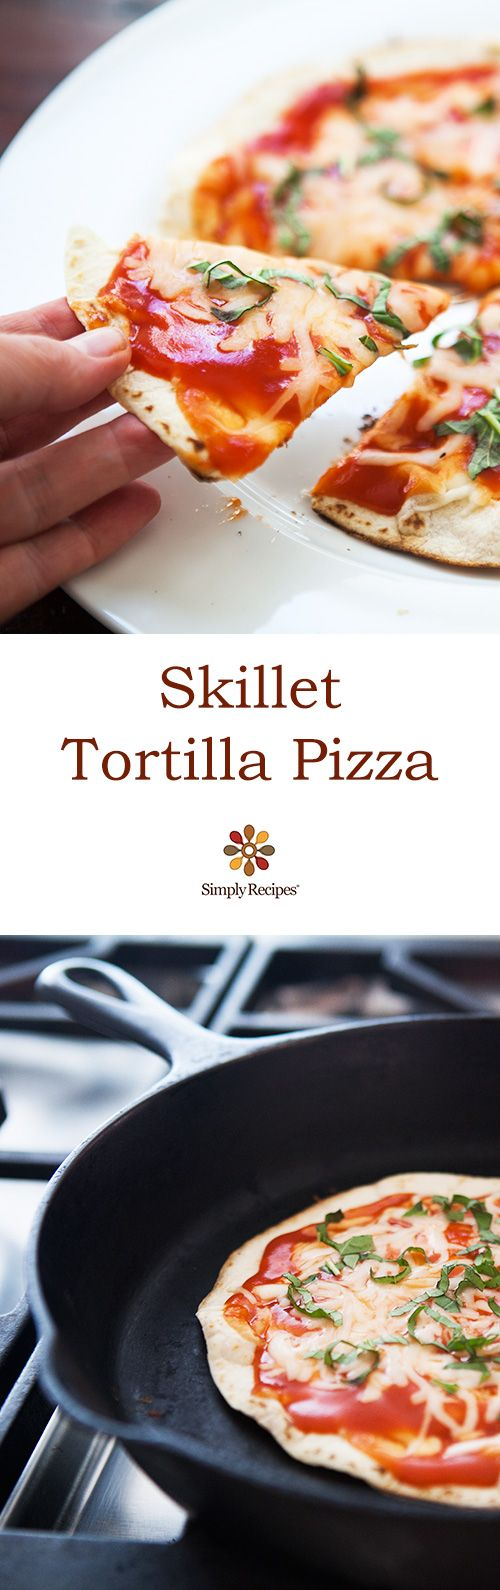 Easiest pizza ever, a Tortilla Pizza, made in a skillet! Takes 10 minutes to make. On SimplyRecipes.com  #easy #snack